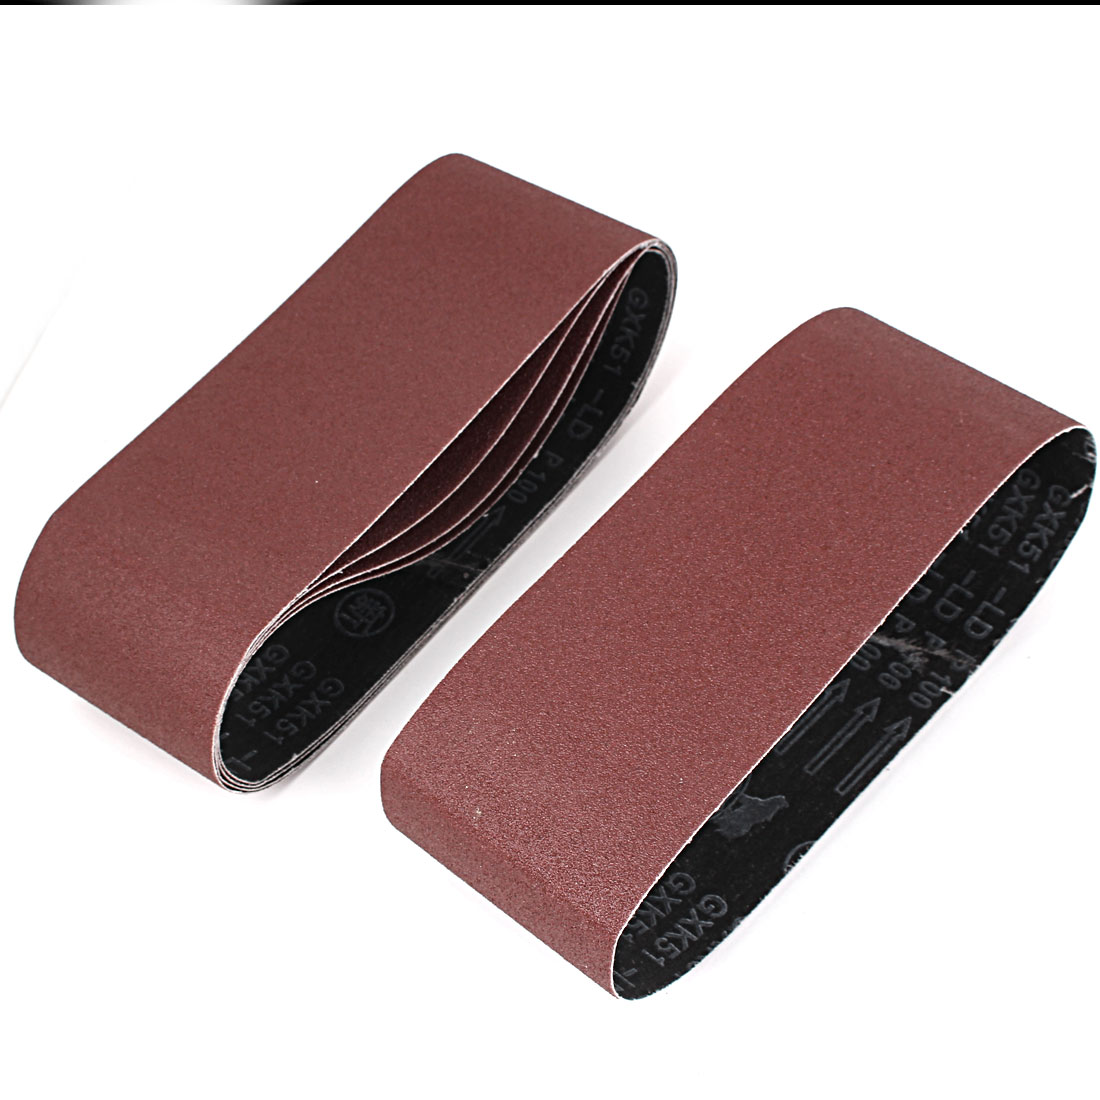 Sander Polishing Machine 610x93mm 100 Grit Brushed Abrasive Sanding Belt Sandpaper 5pcs